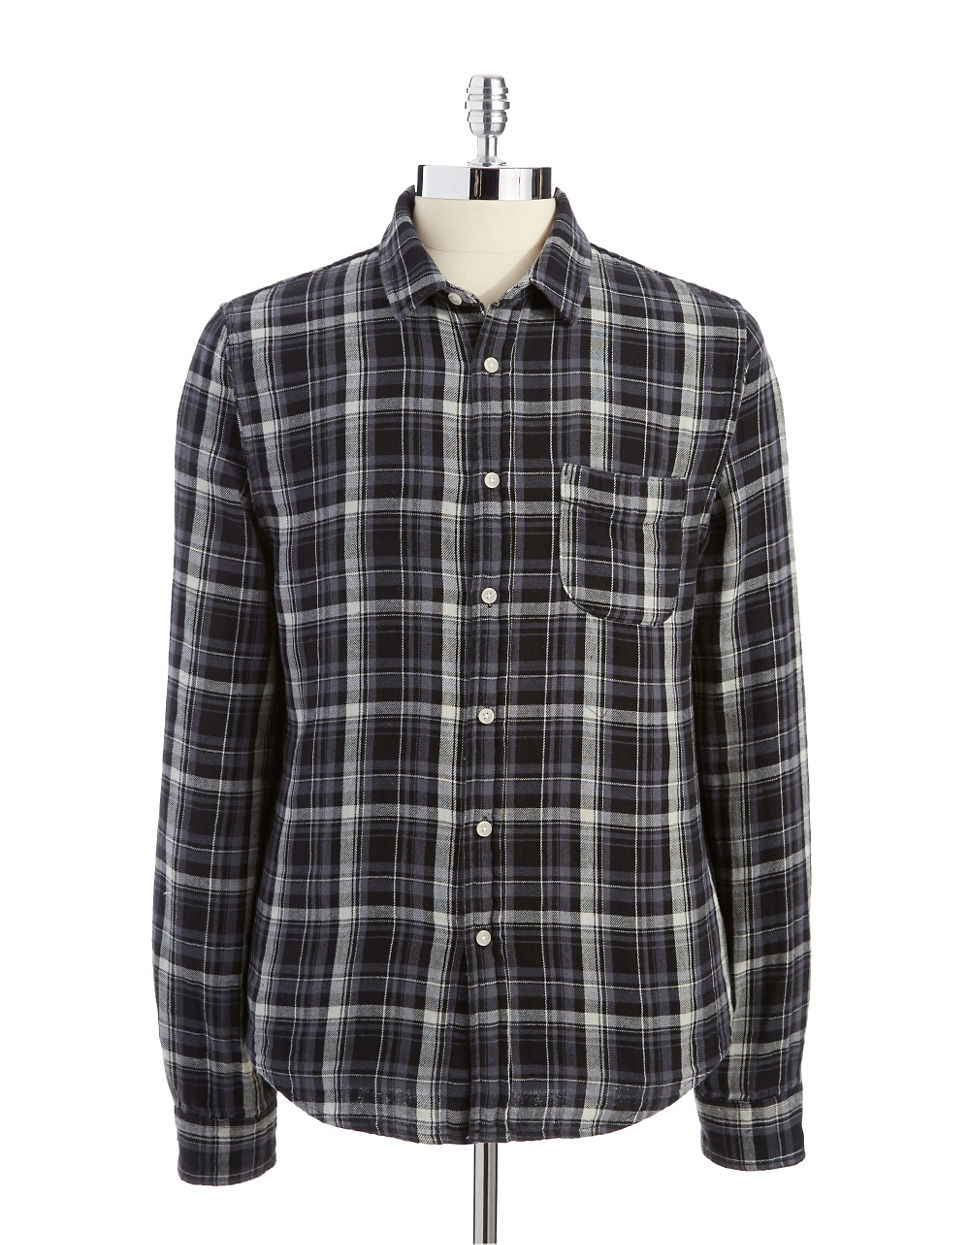 Joe 39 s jeans joes jeans plaid woven flannel shirt in black for Flannel shirt and jeans